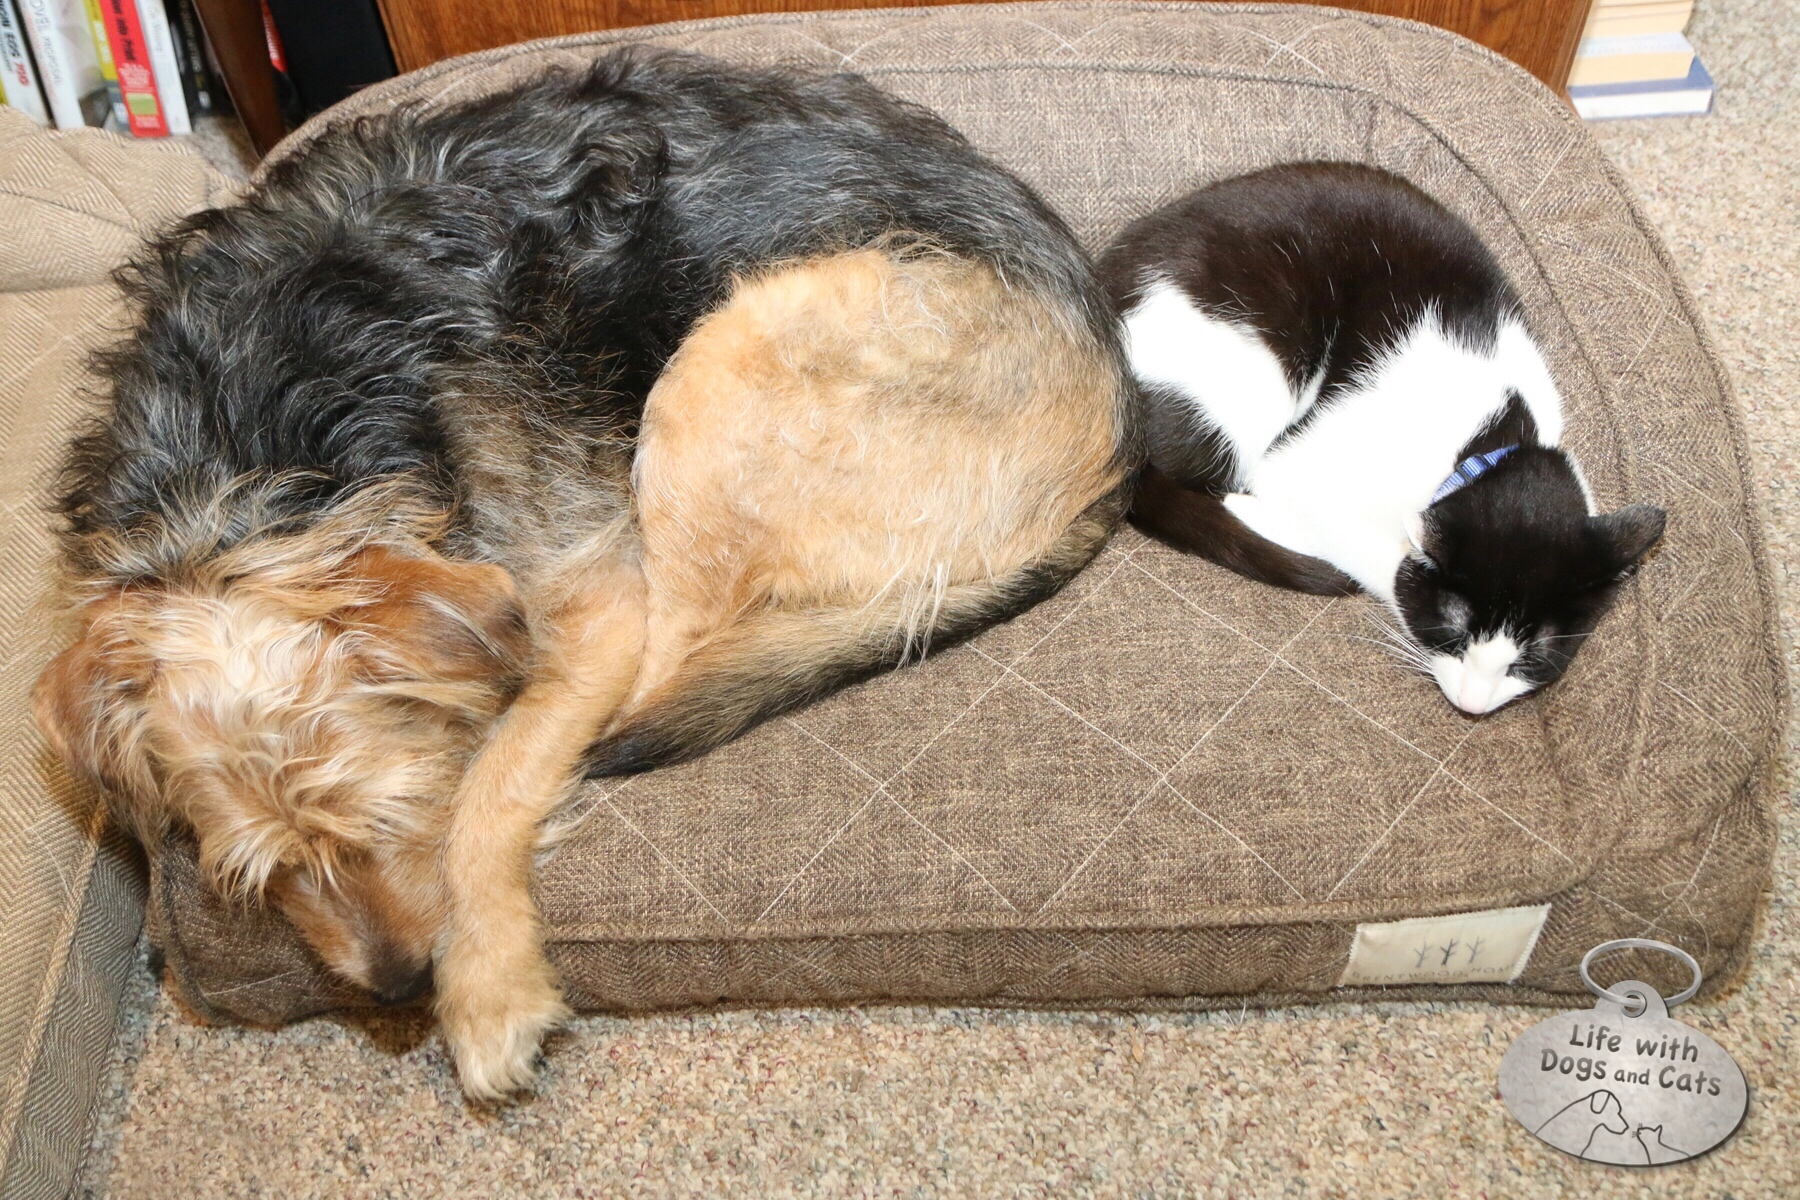 Tucker and Calvin had a very special relationship.